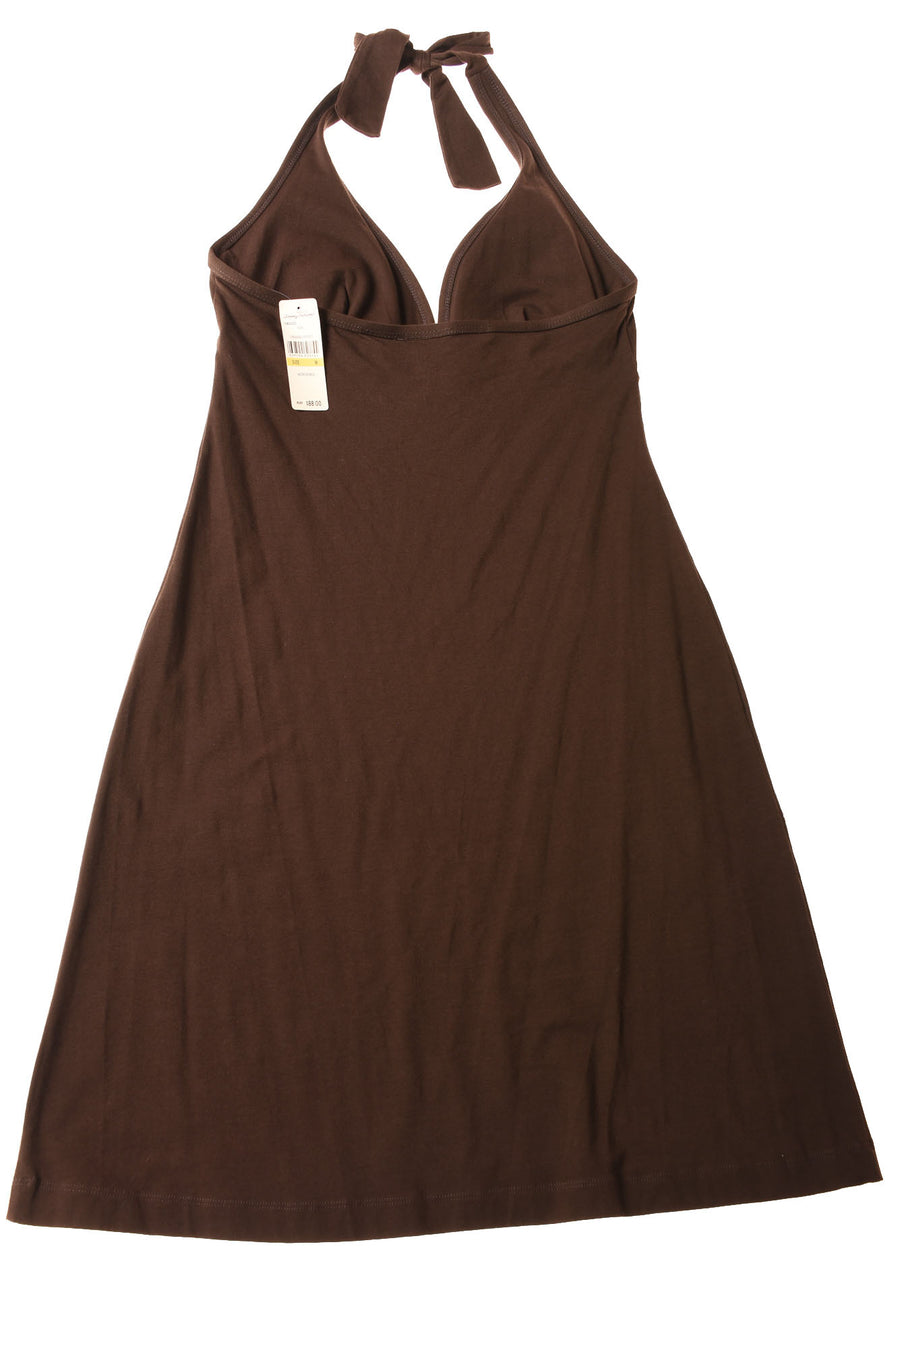 NEW Tommy Bahama Women's Dress Medium Brown